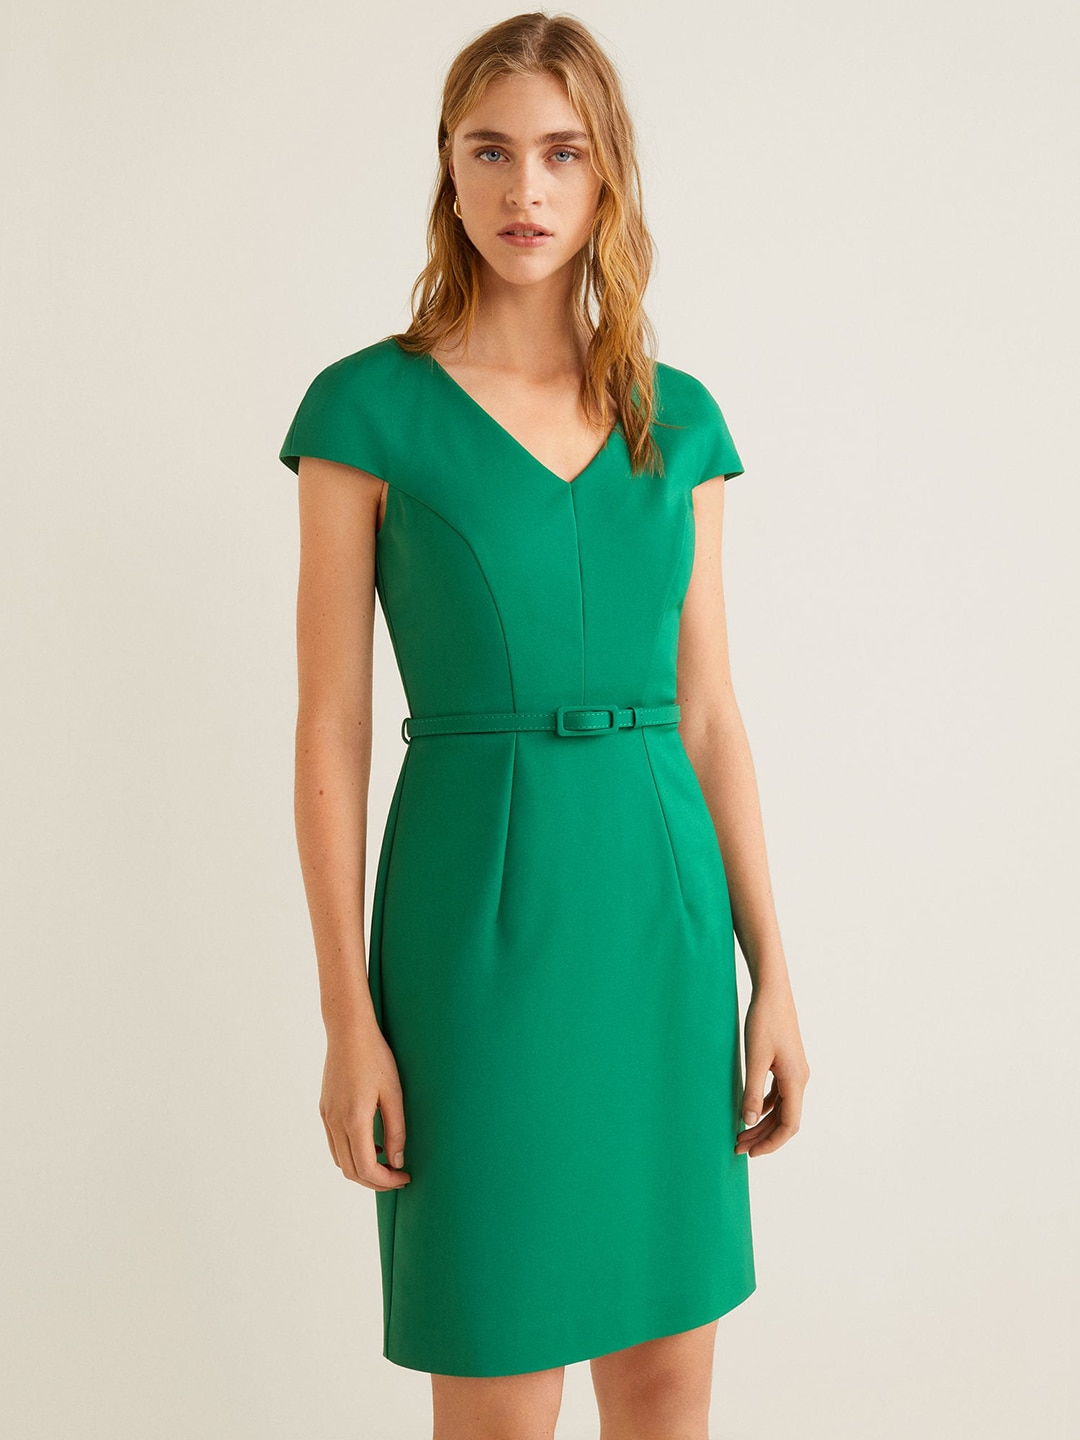 fea2d6120c Womens Green Dress - Buy Green Dress for Women Online